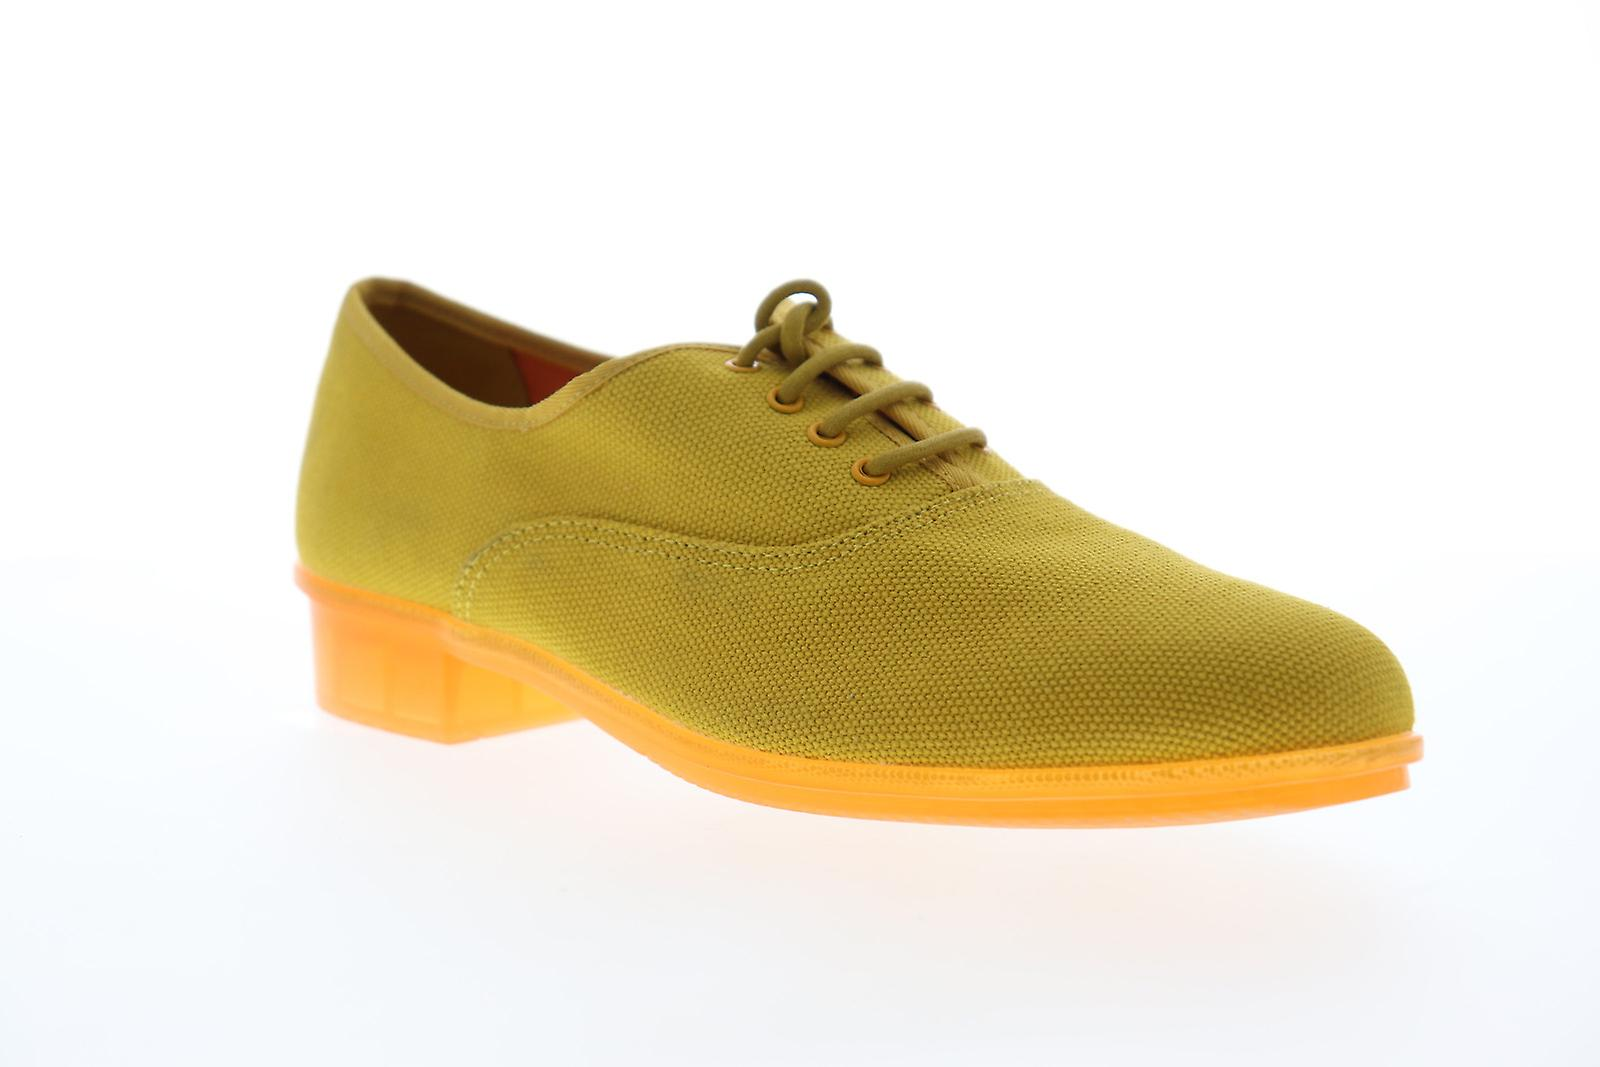 Camper Casi Jazz Womens Yellow Canvas Lace Up Flats Oxfords Buty mDfQ8